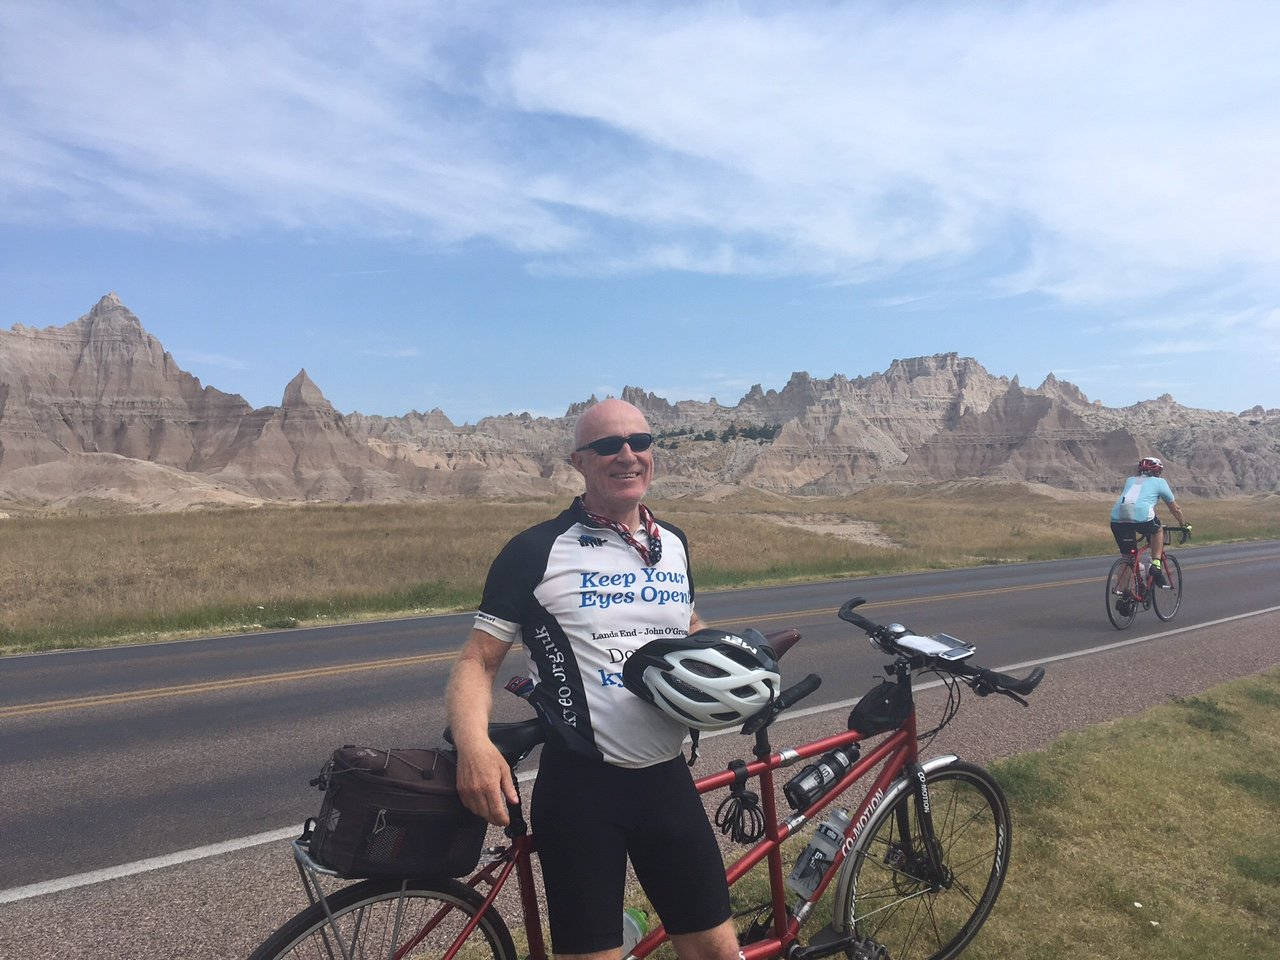 Chris in Badlands national part, South Dakota